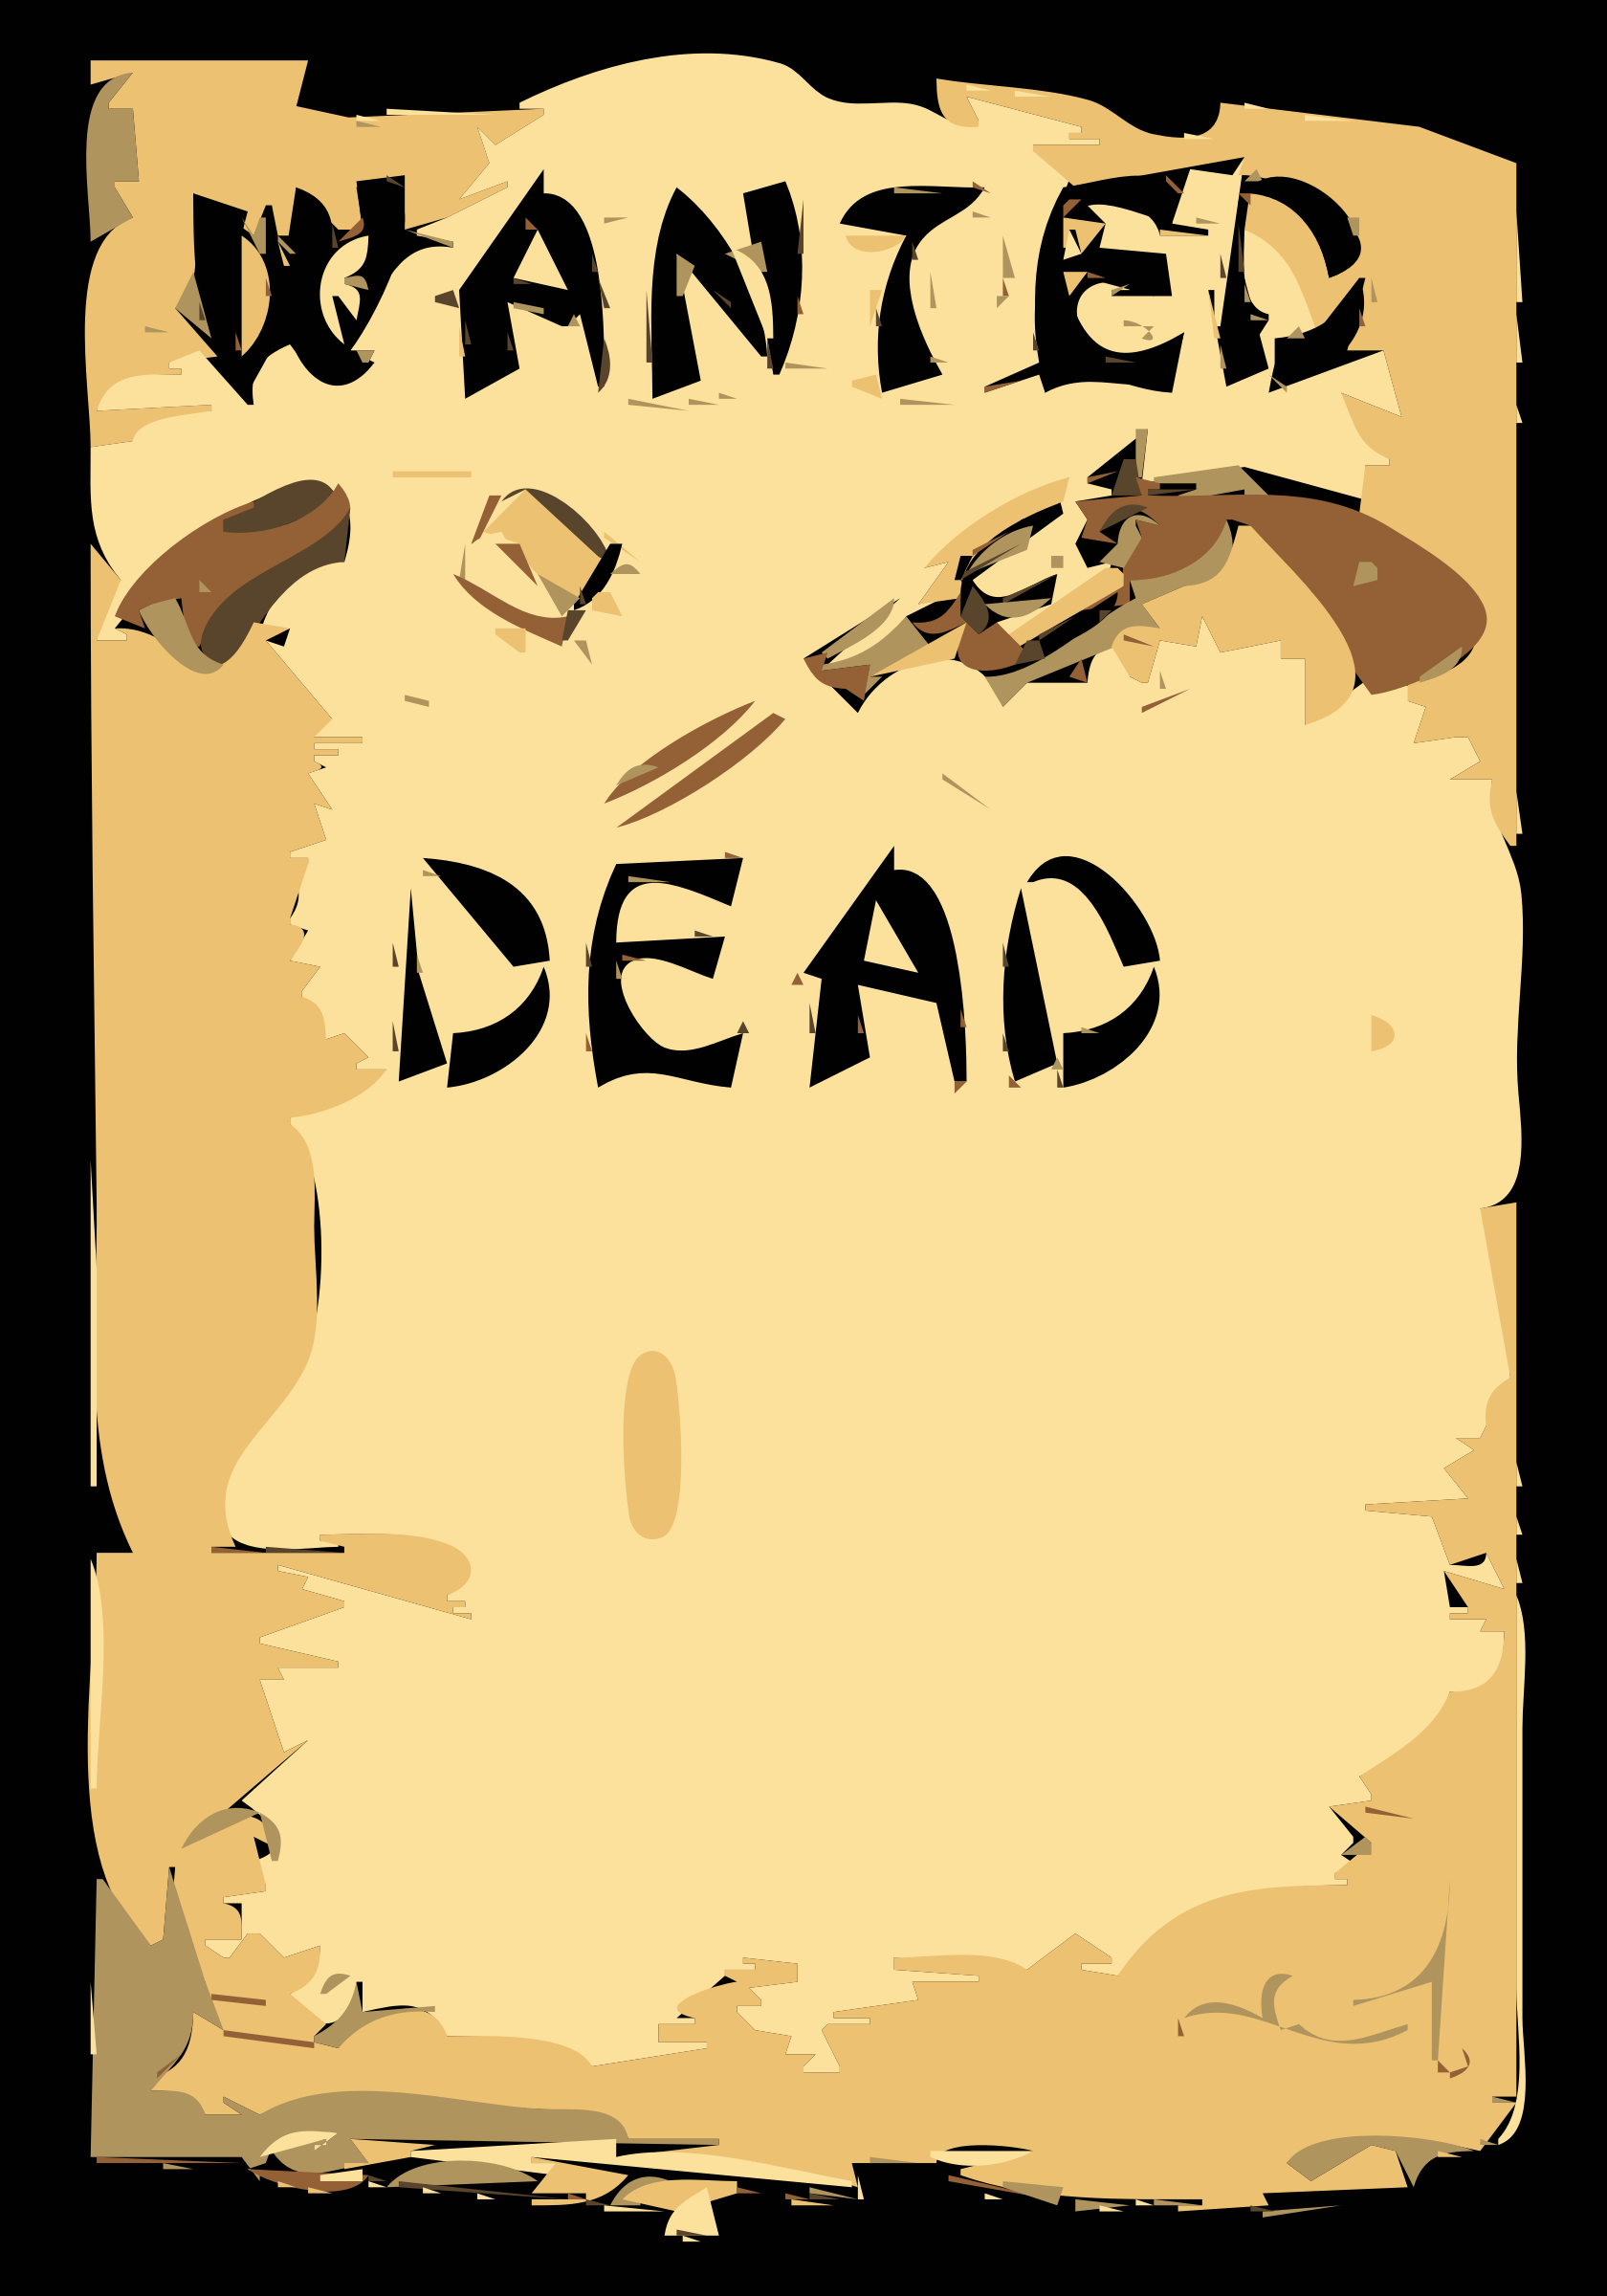 WANTED POSTER 3 by themidnyteryder83